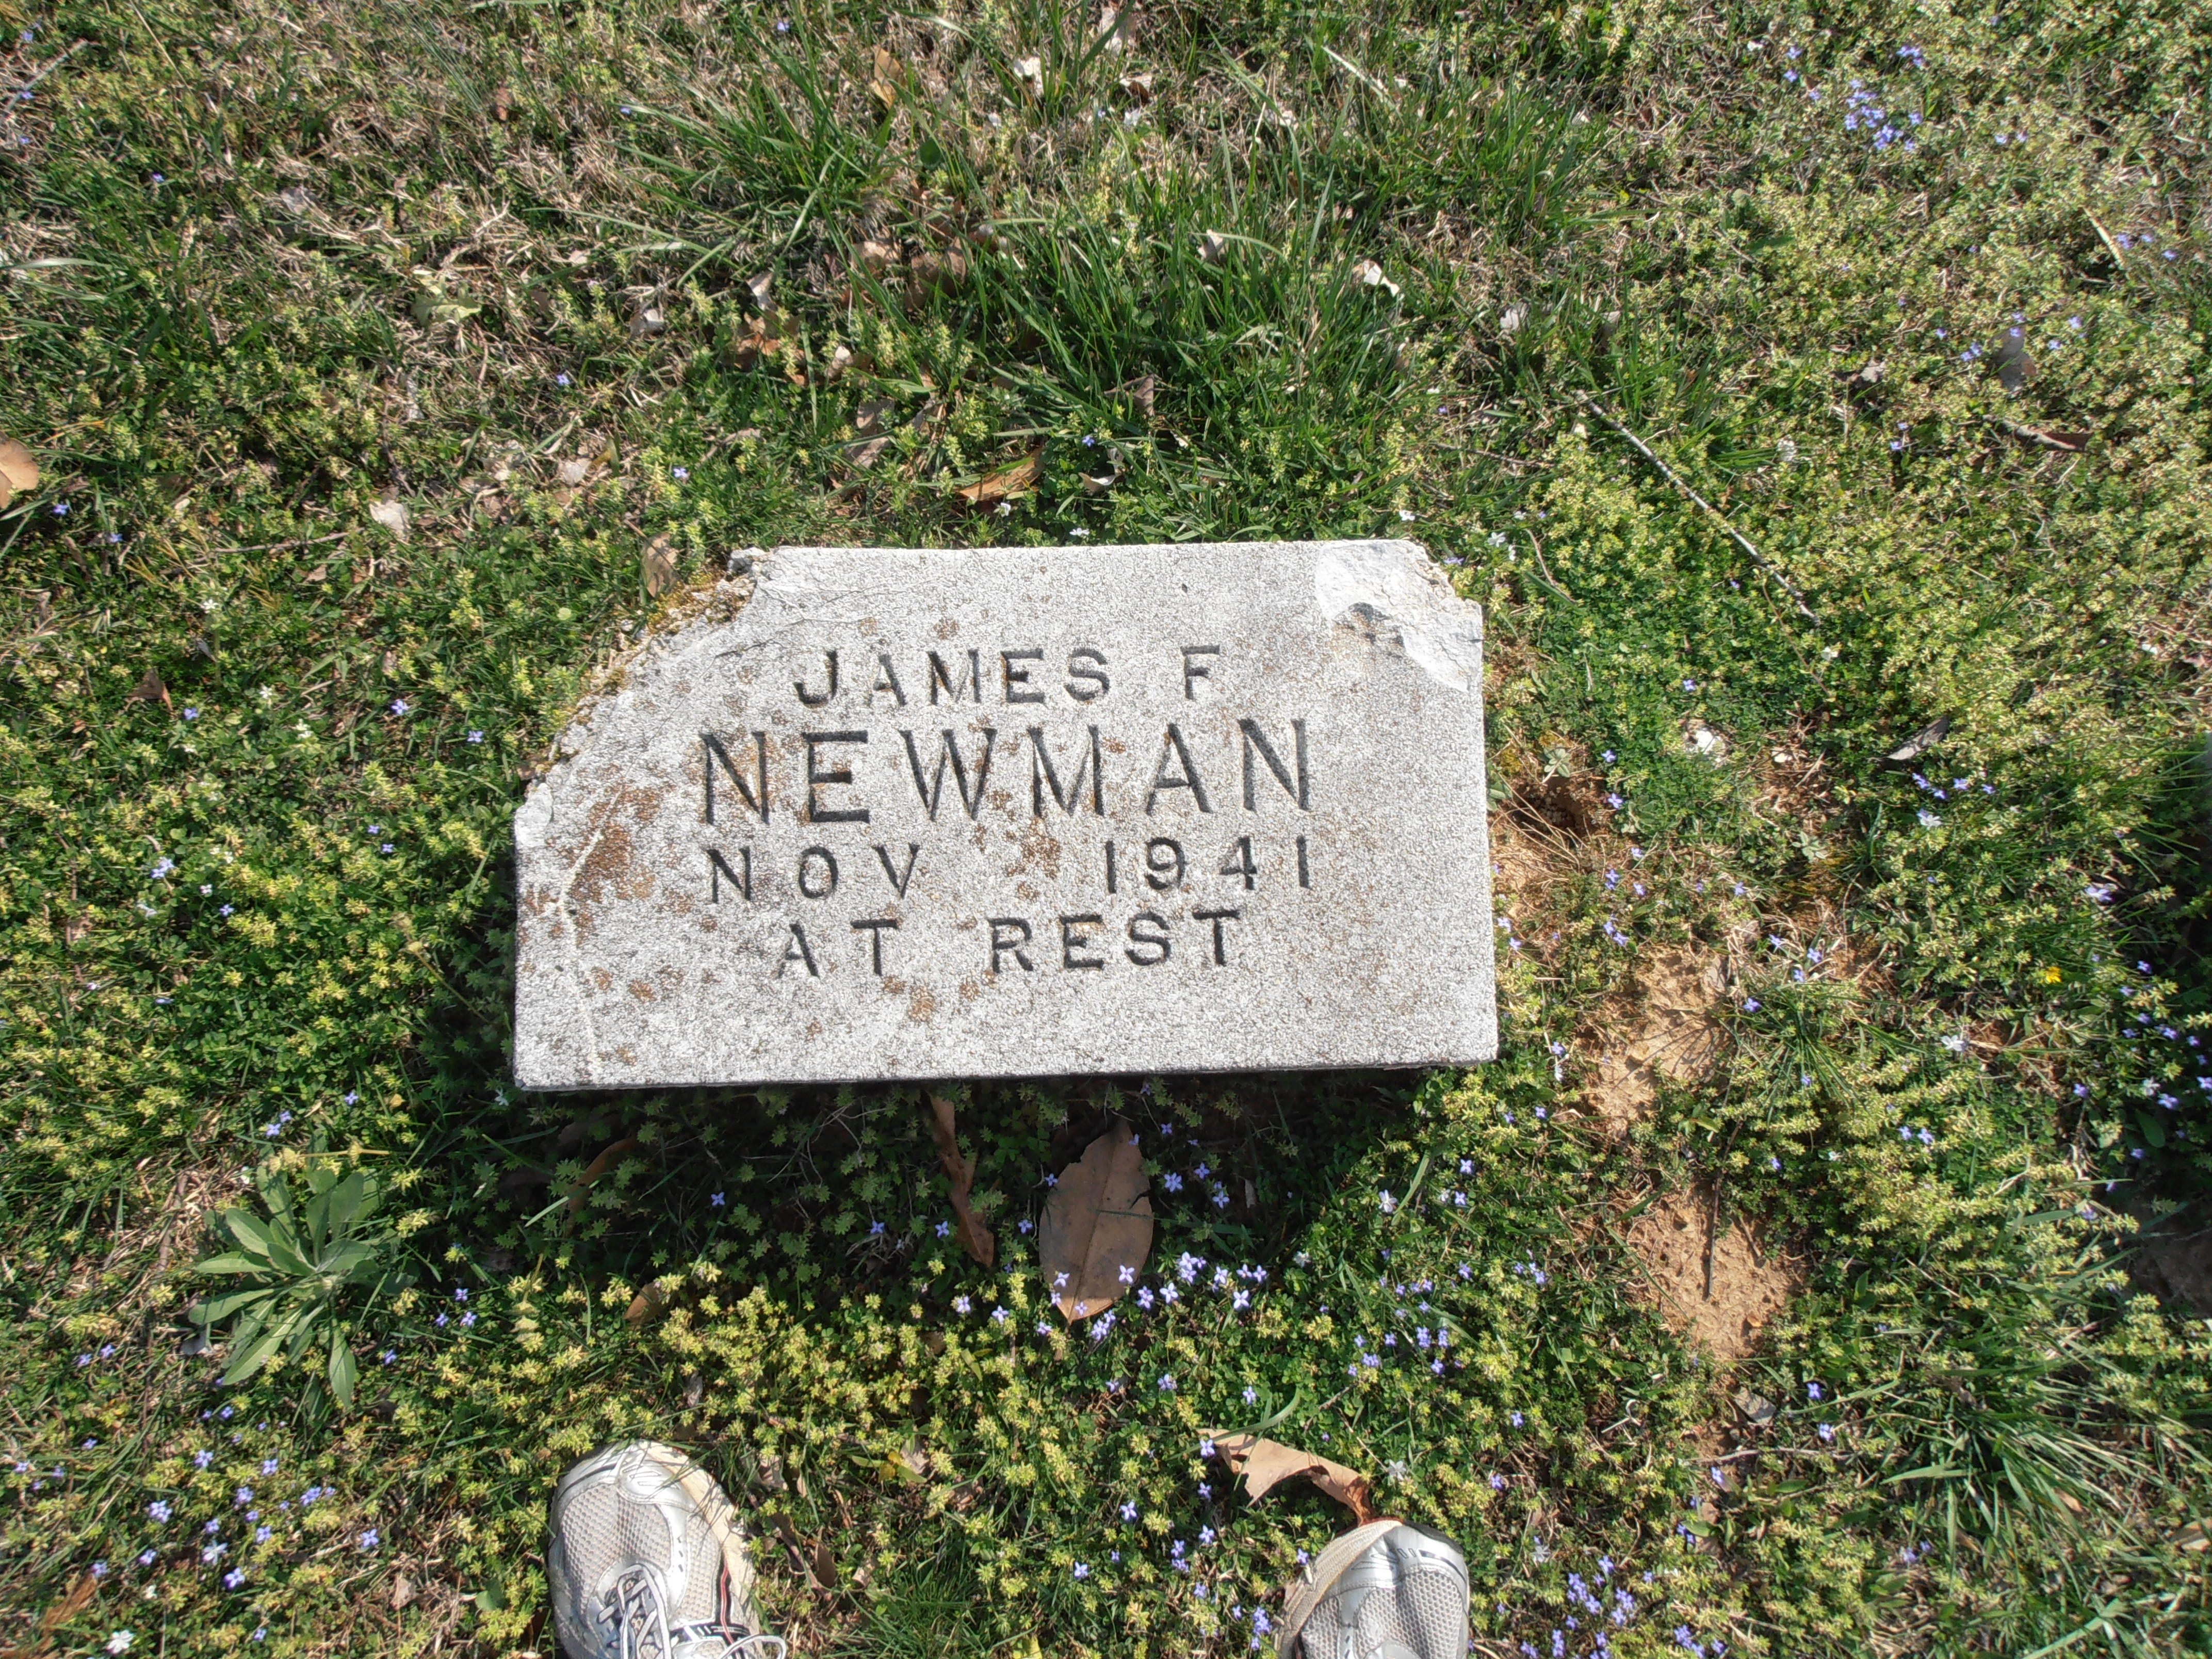 James Franklin Newman